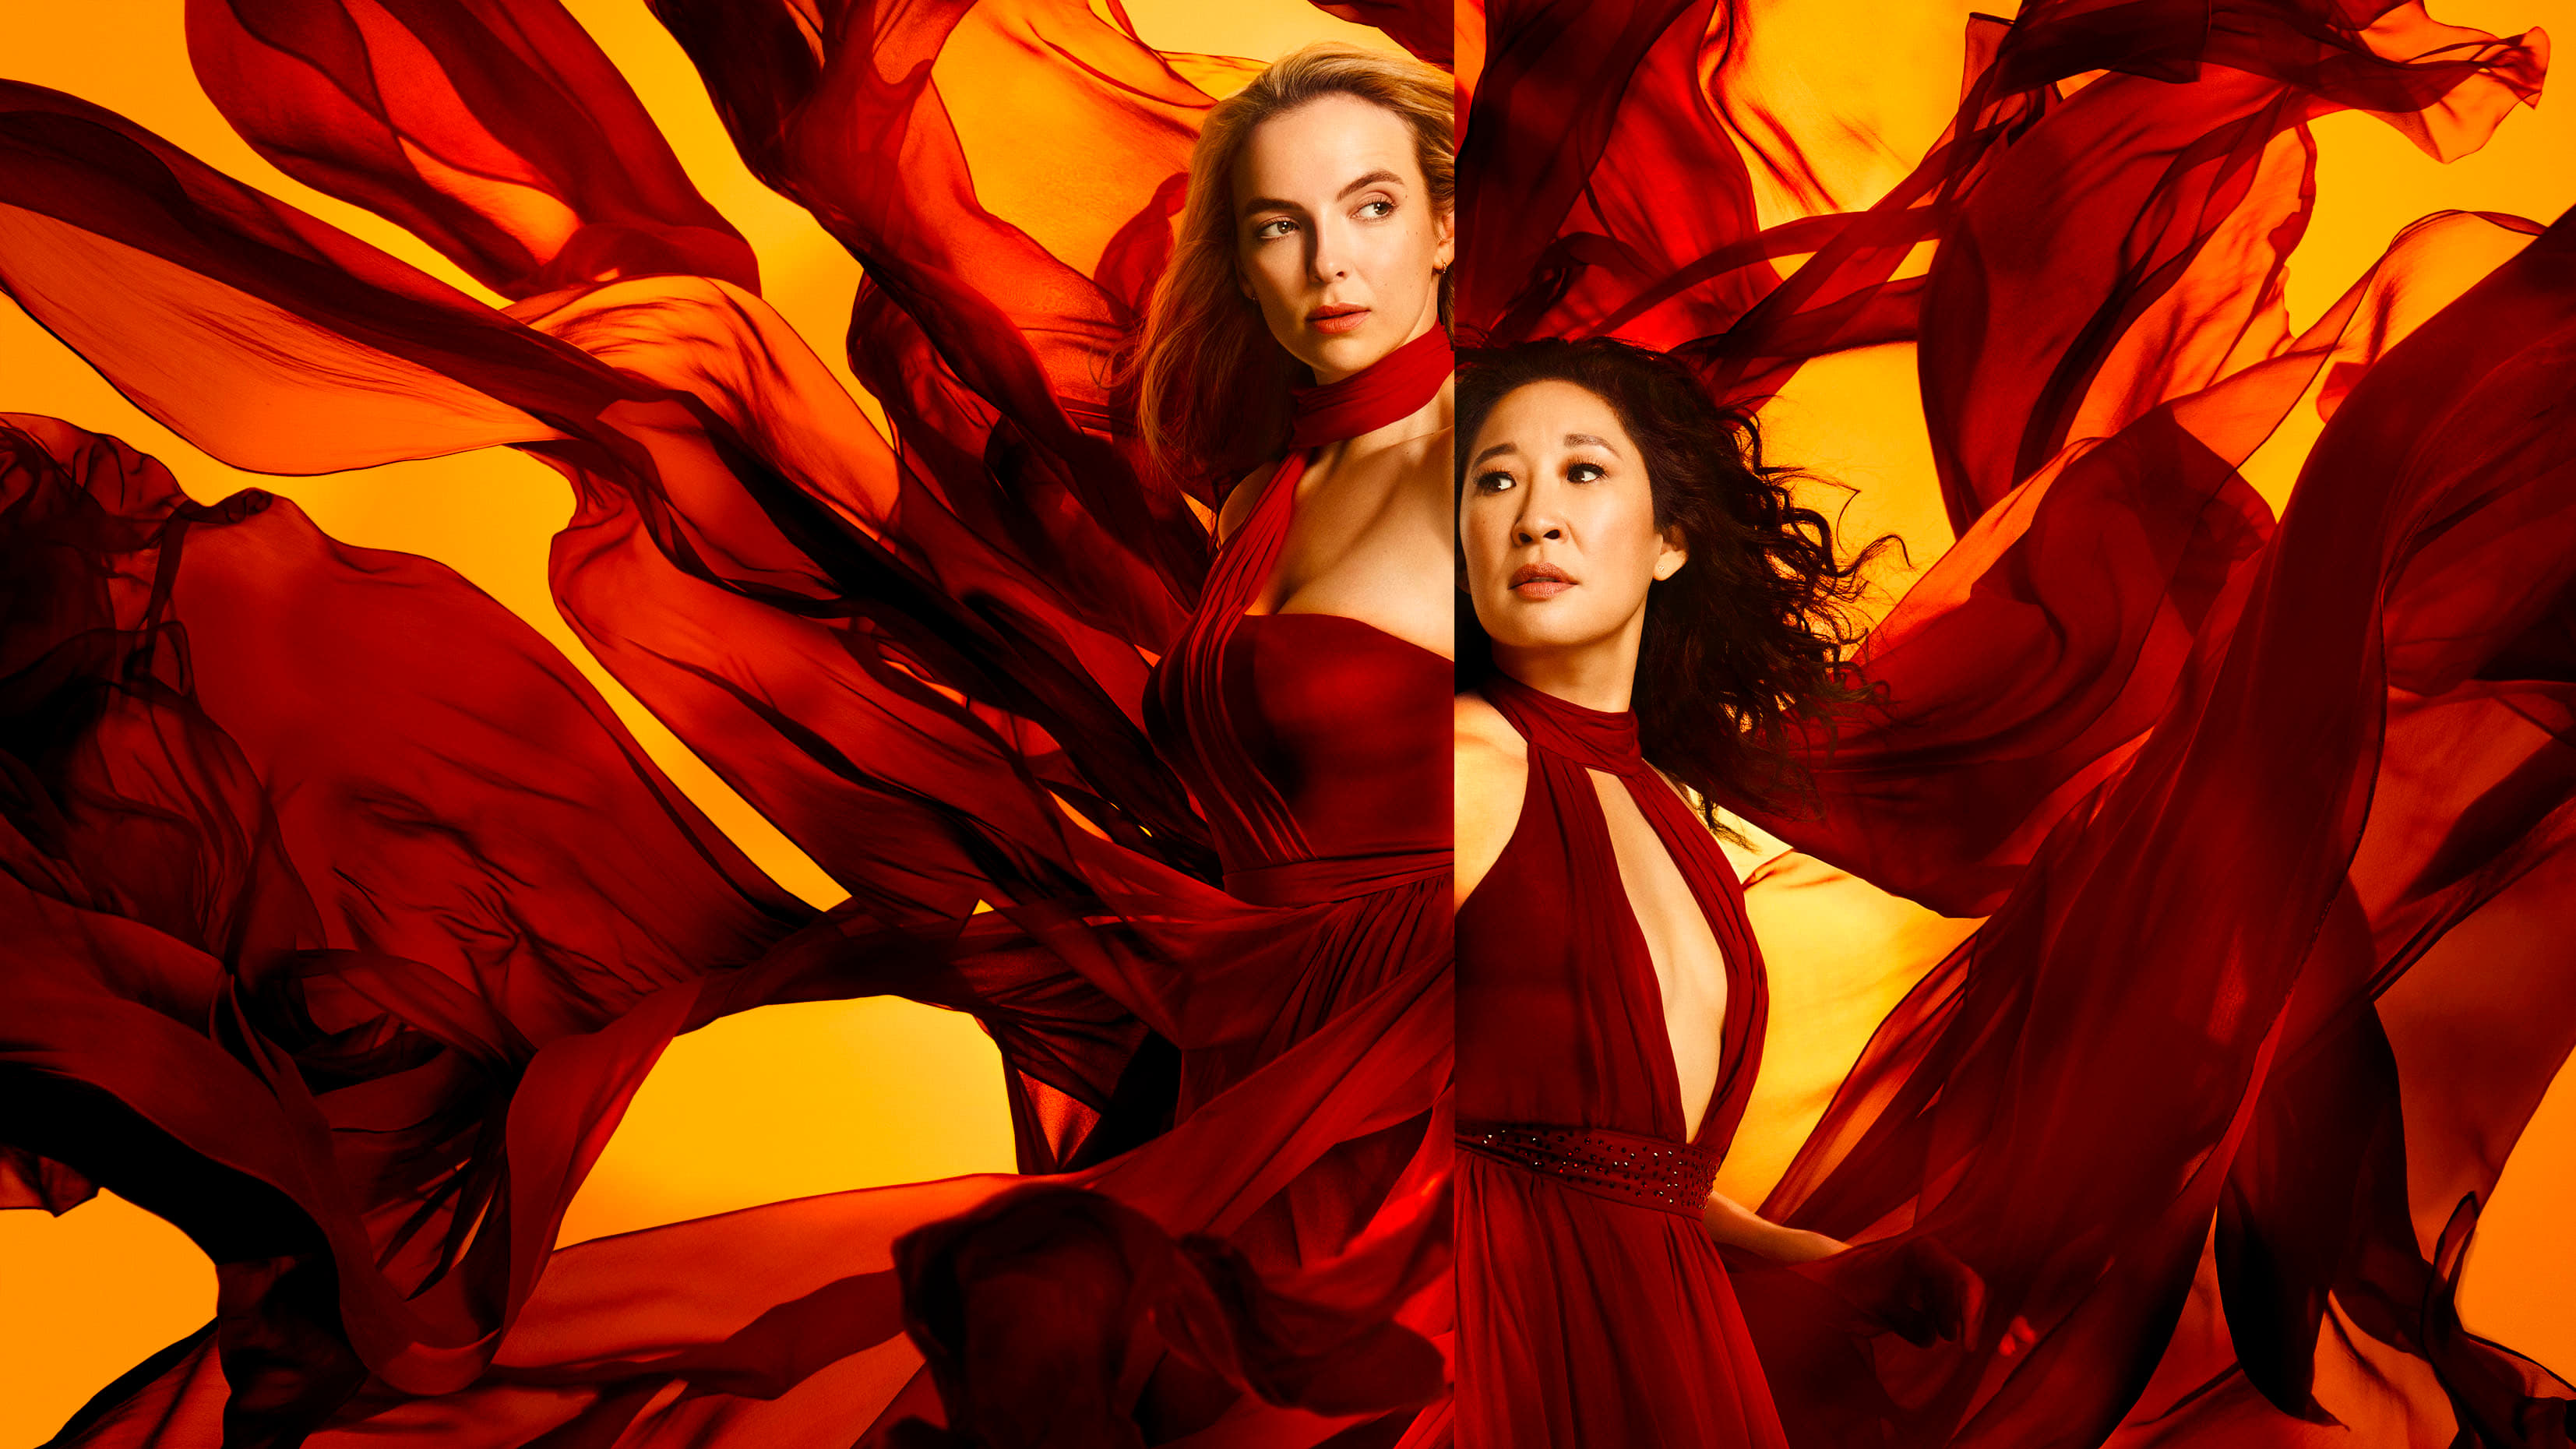 Third season of Killing Eve to release earlier